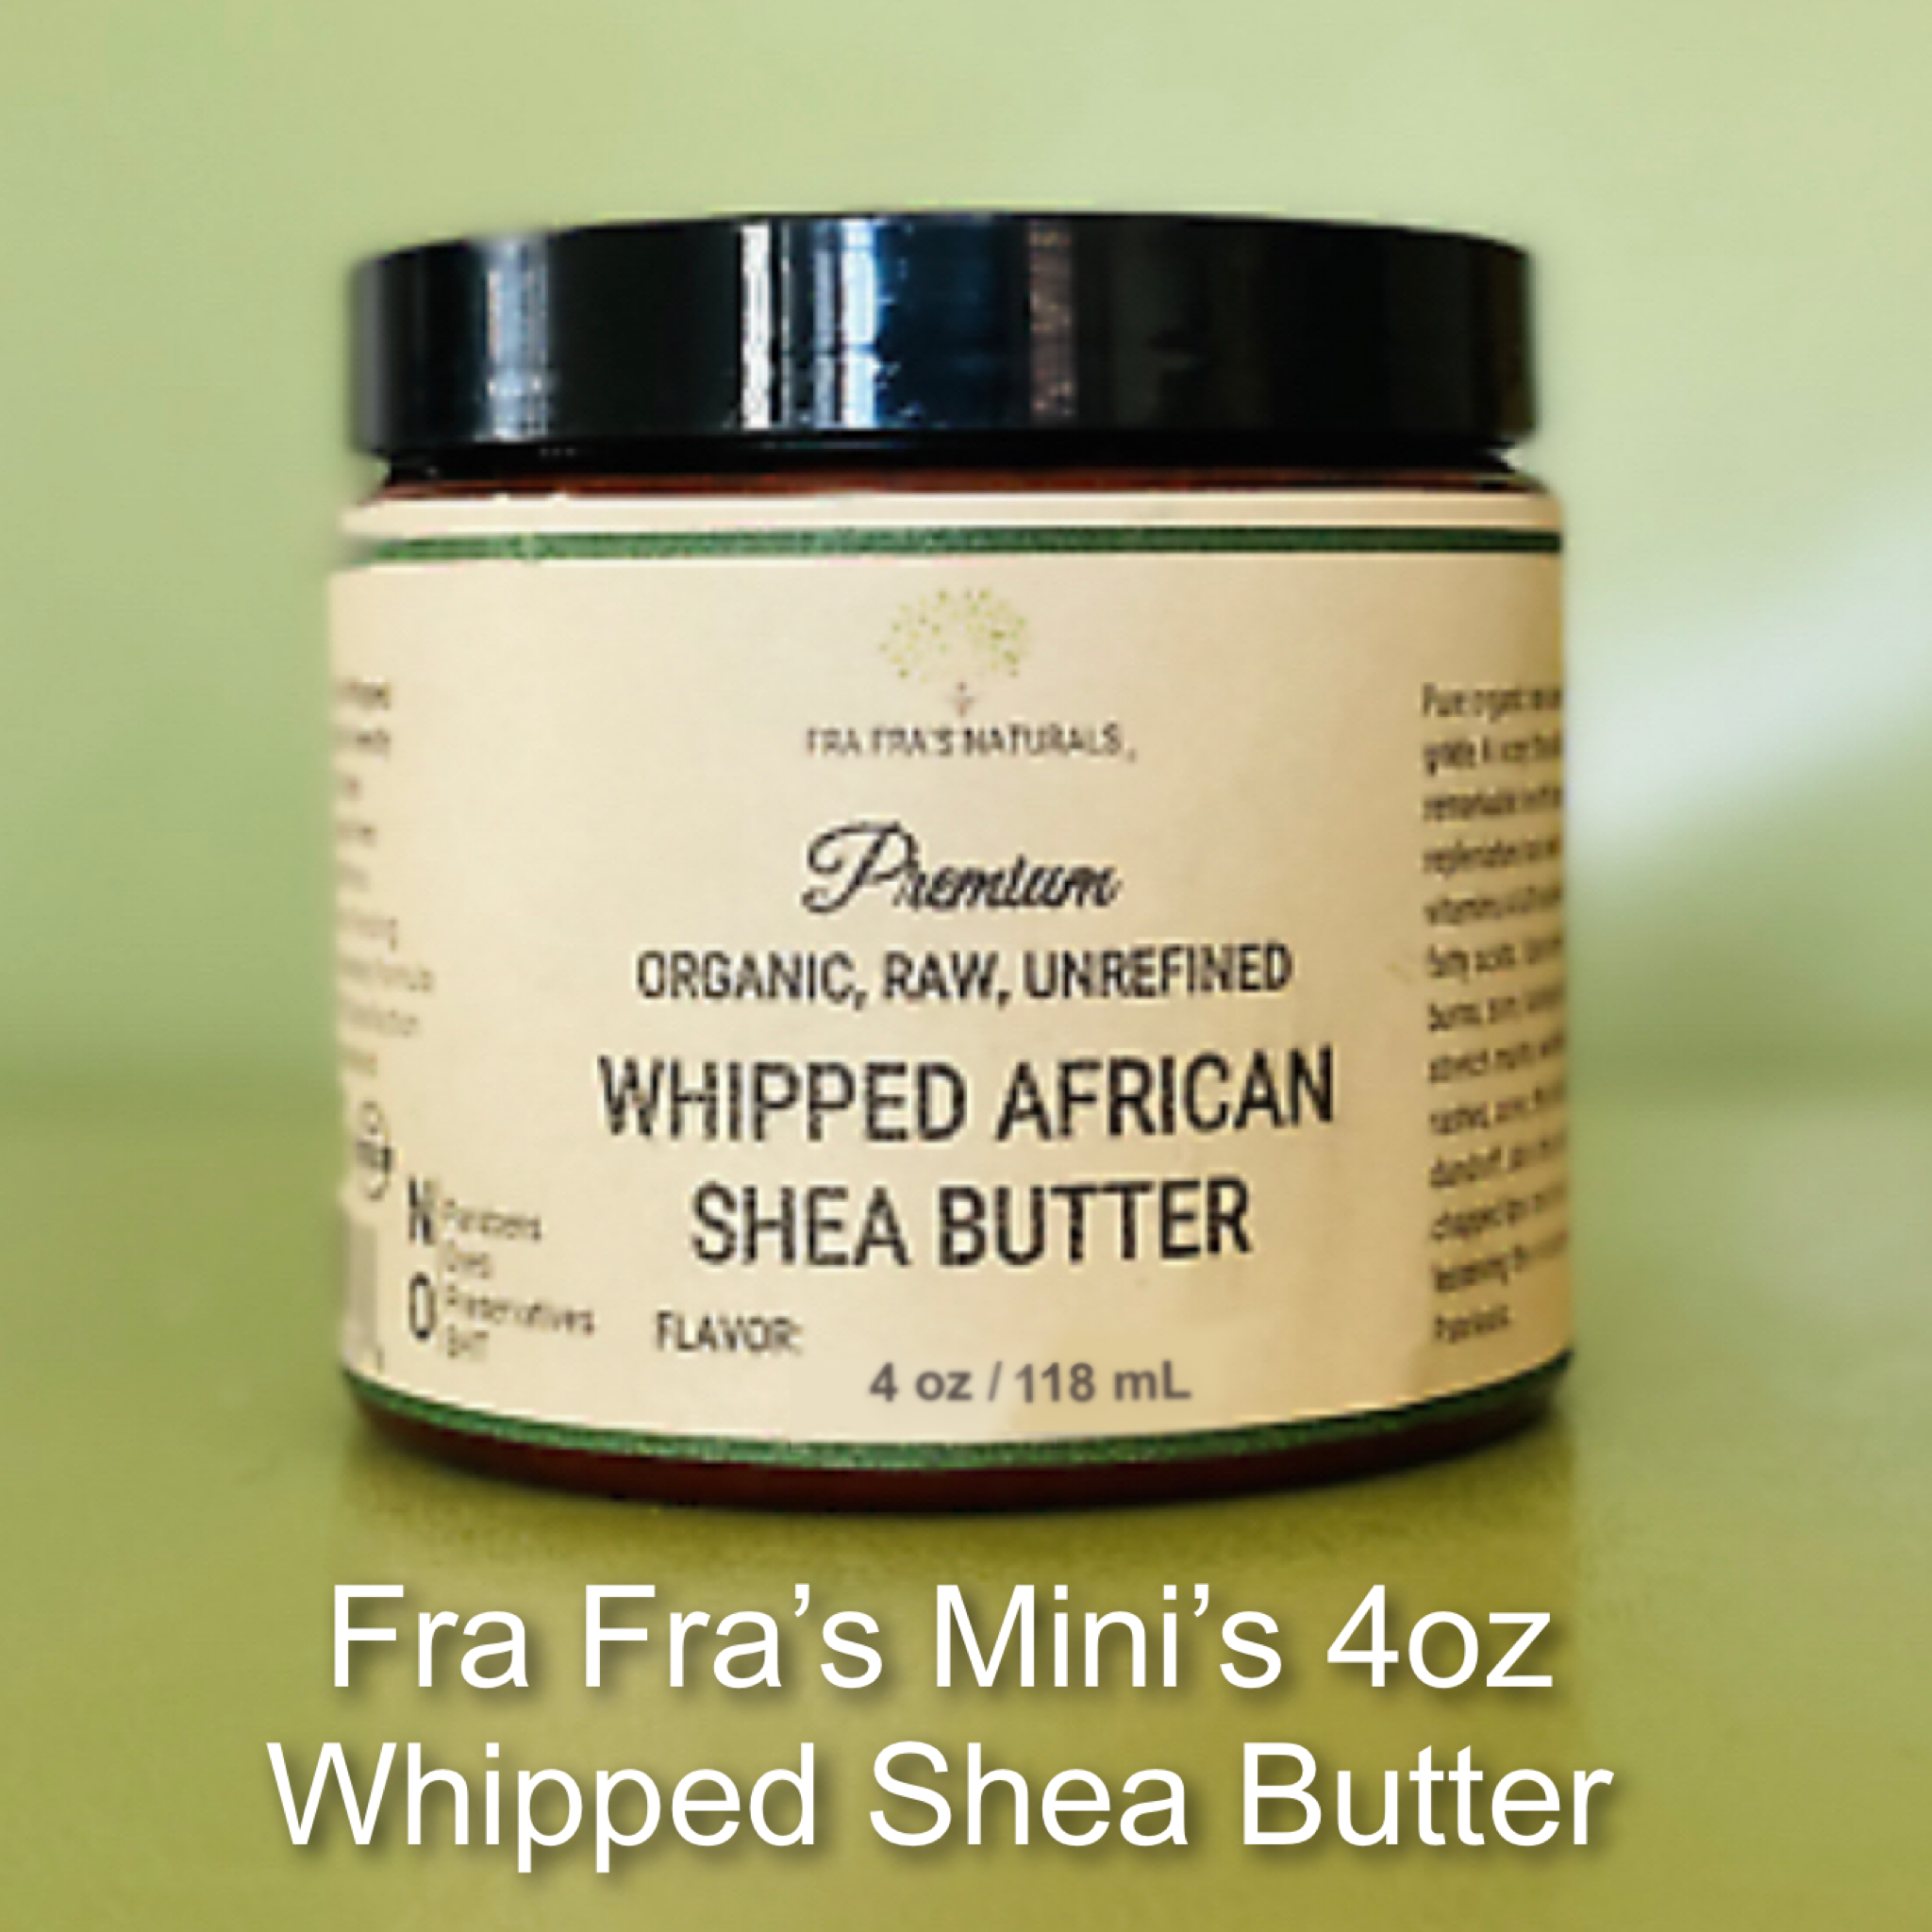 Fra Fra's Naturals | Premium Honeymoon Whipped Shea Butter Blend